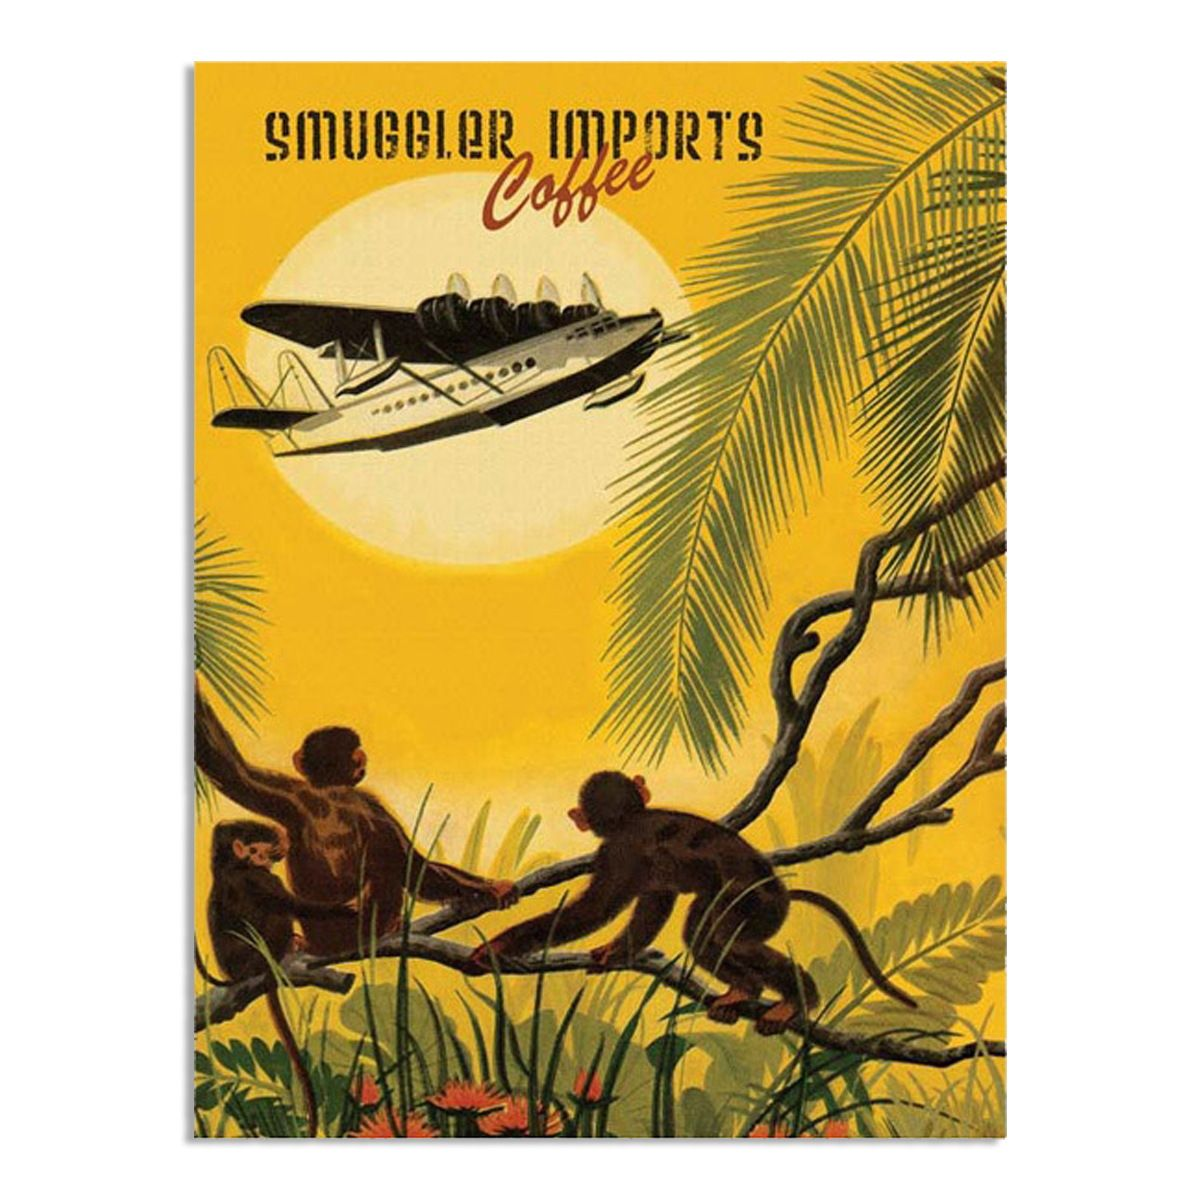 Smuggler Imports Coffee Tropical Metal Sign   Coffee display, Cafe ...